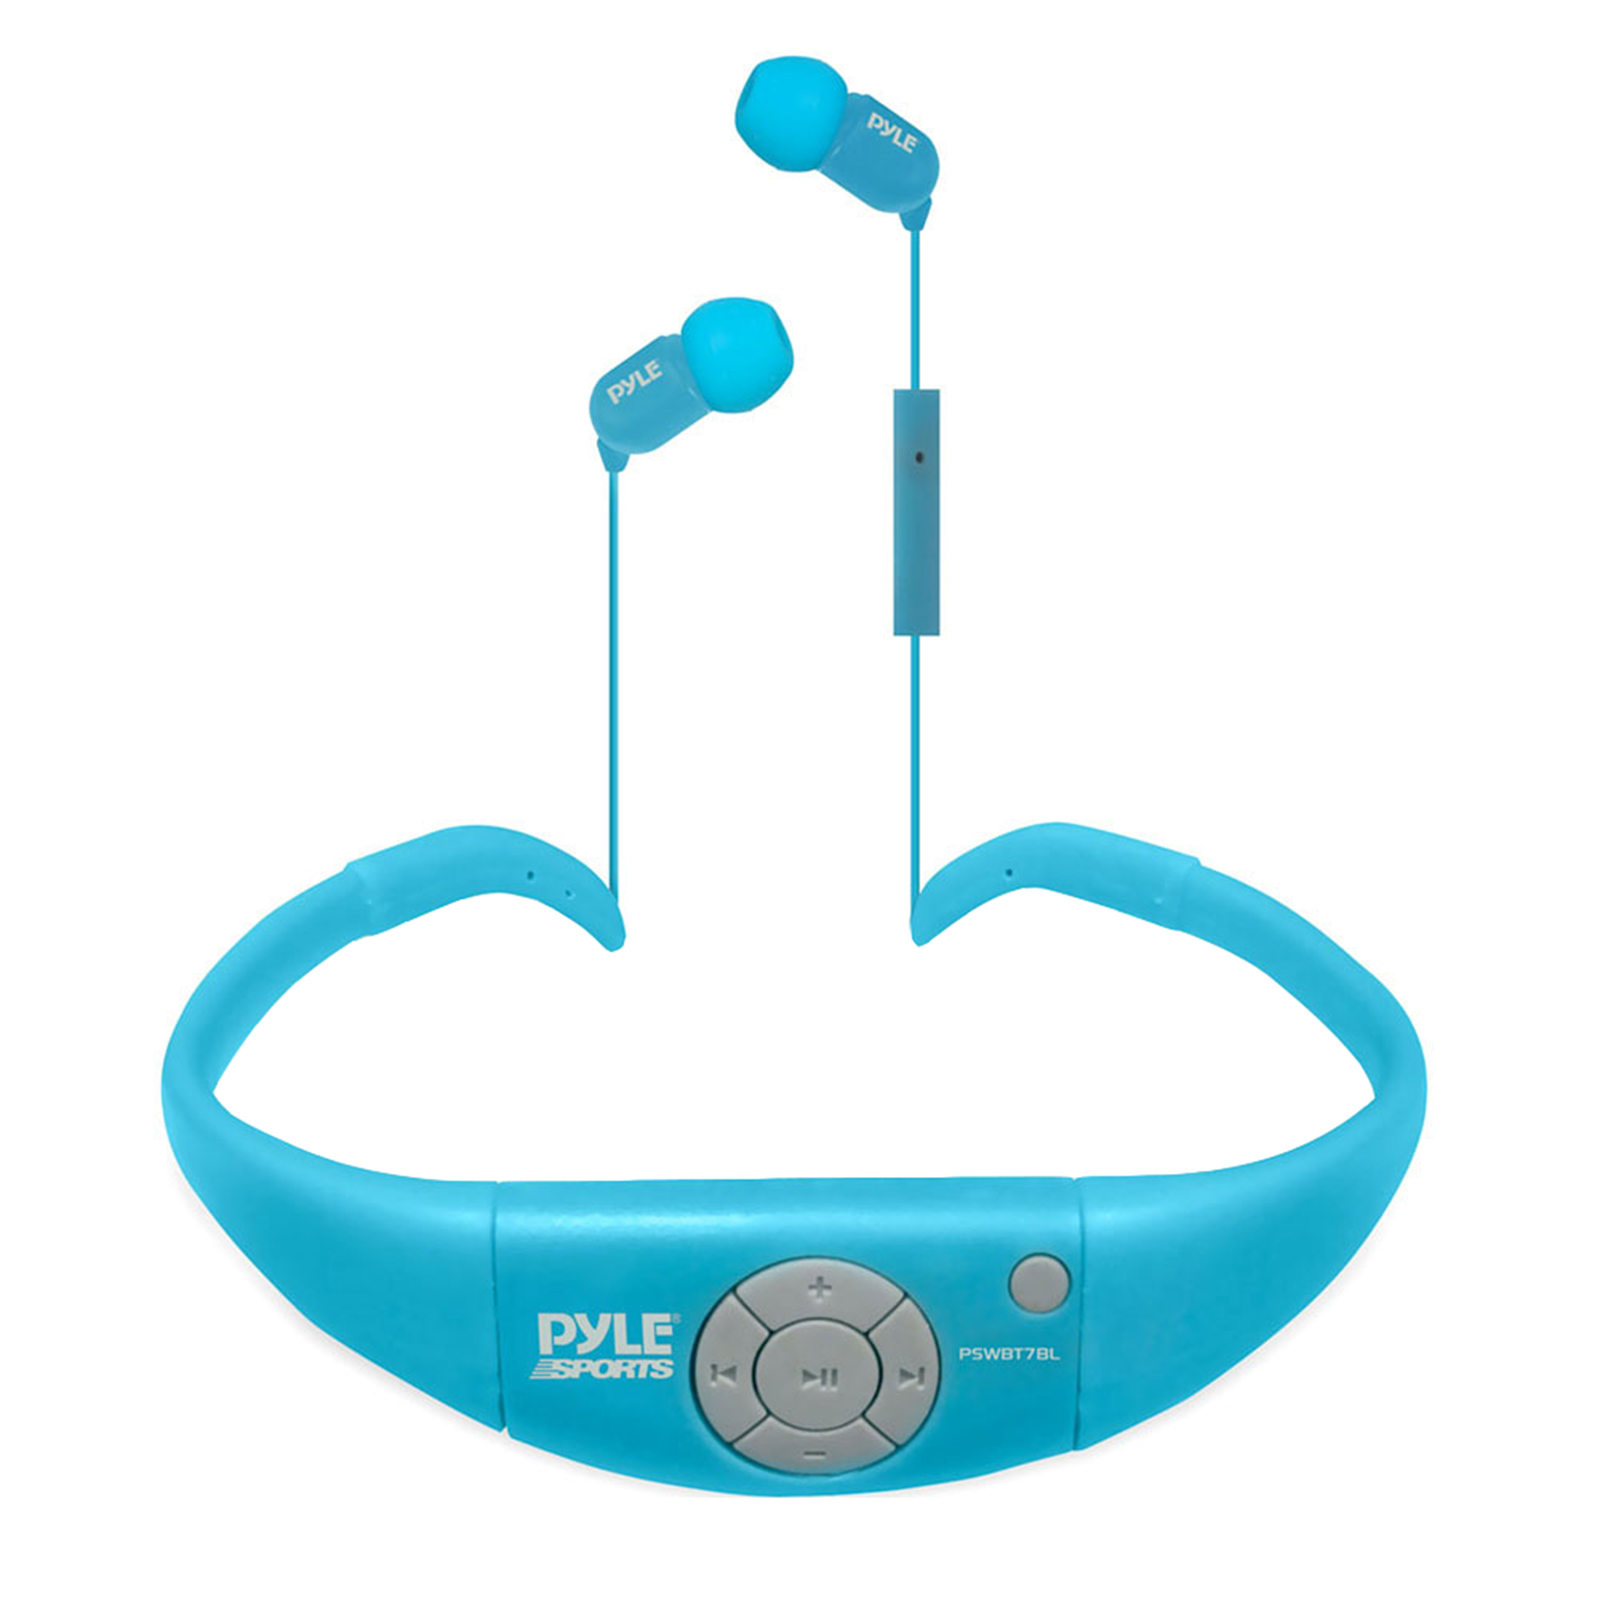 Active Sport Water Resistant BT Hands Free Cordless Stereo Headphones and Headset with Built in Microphone for Call Answering (Blue)